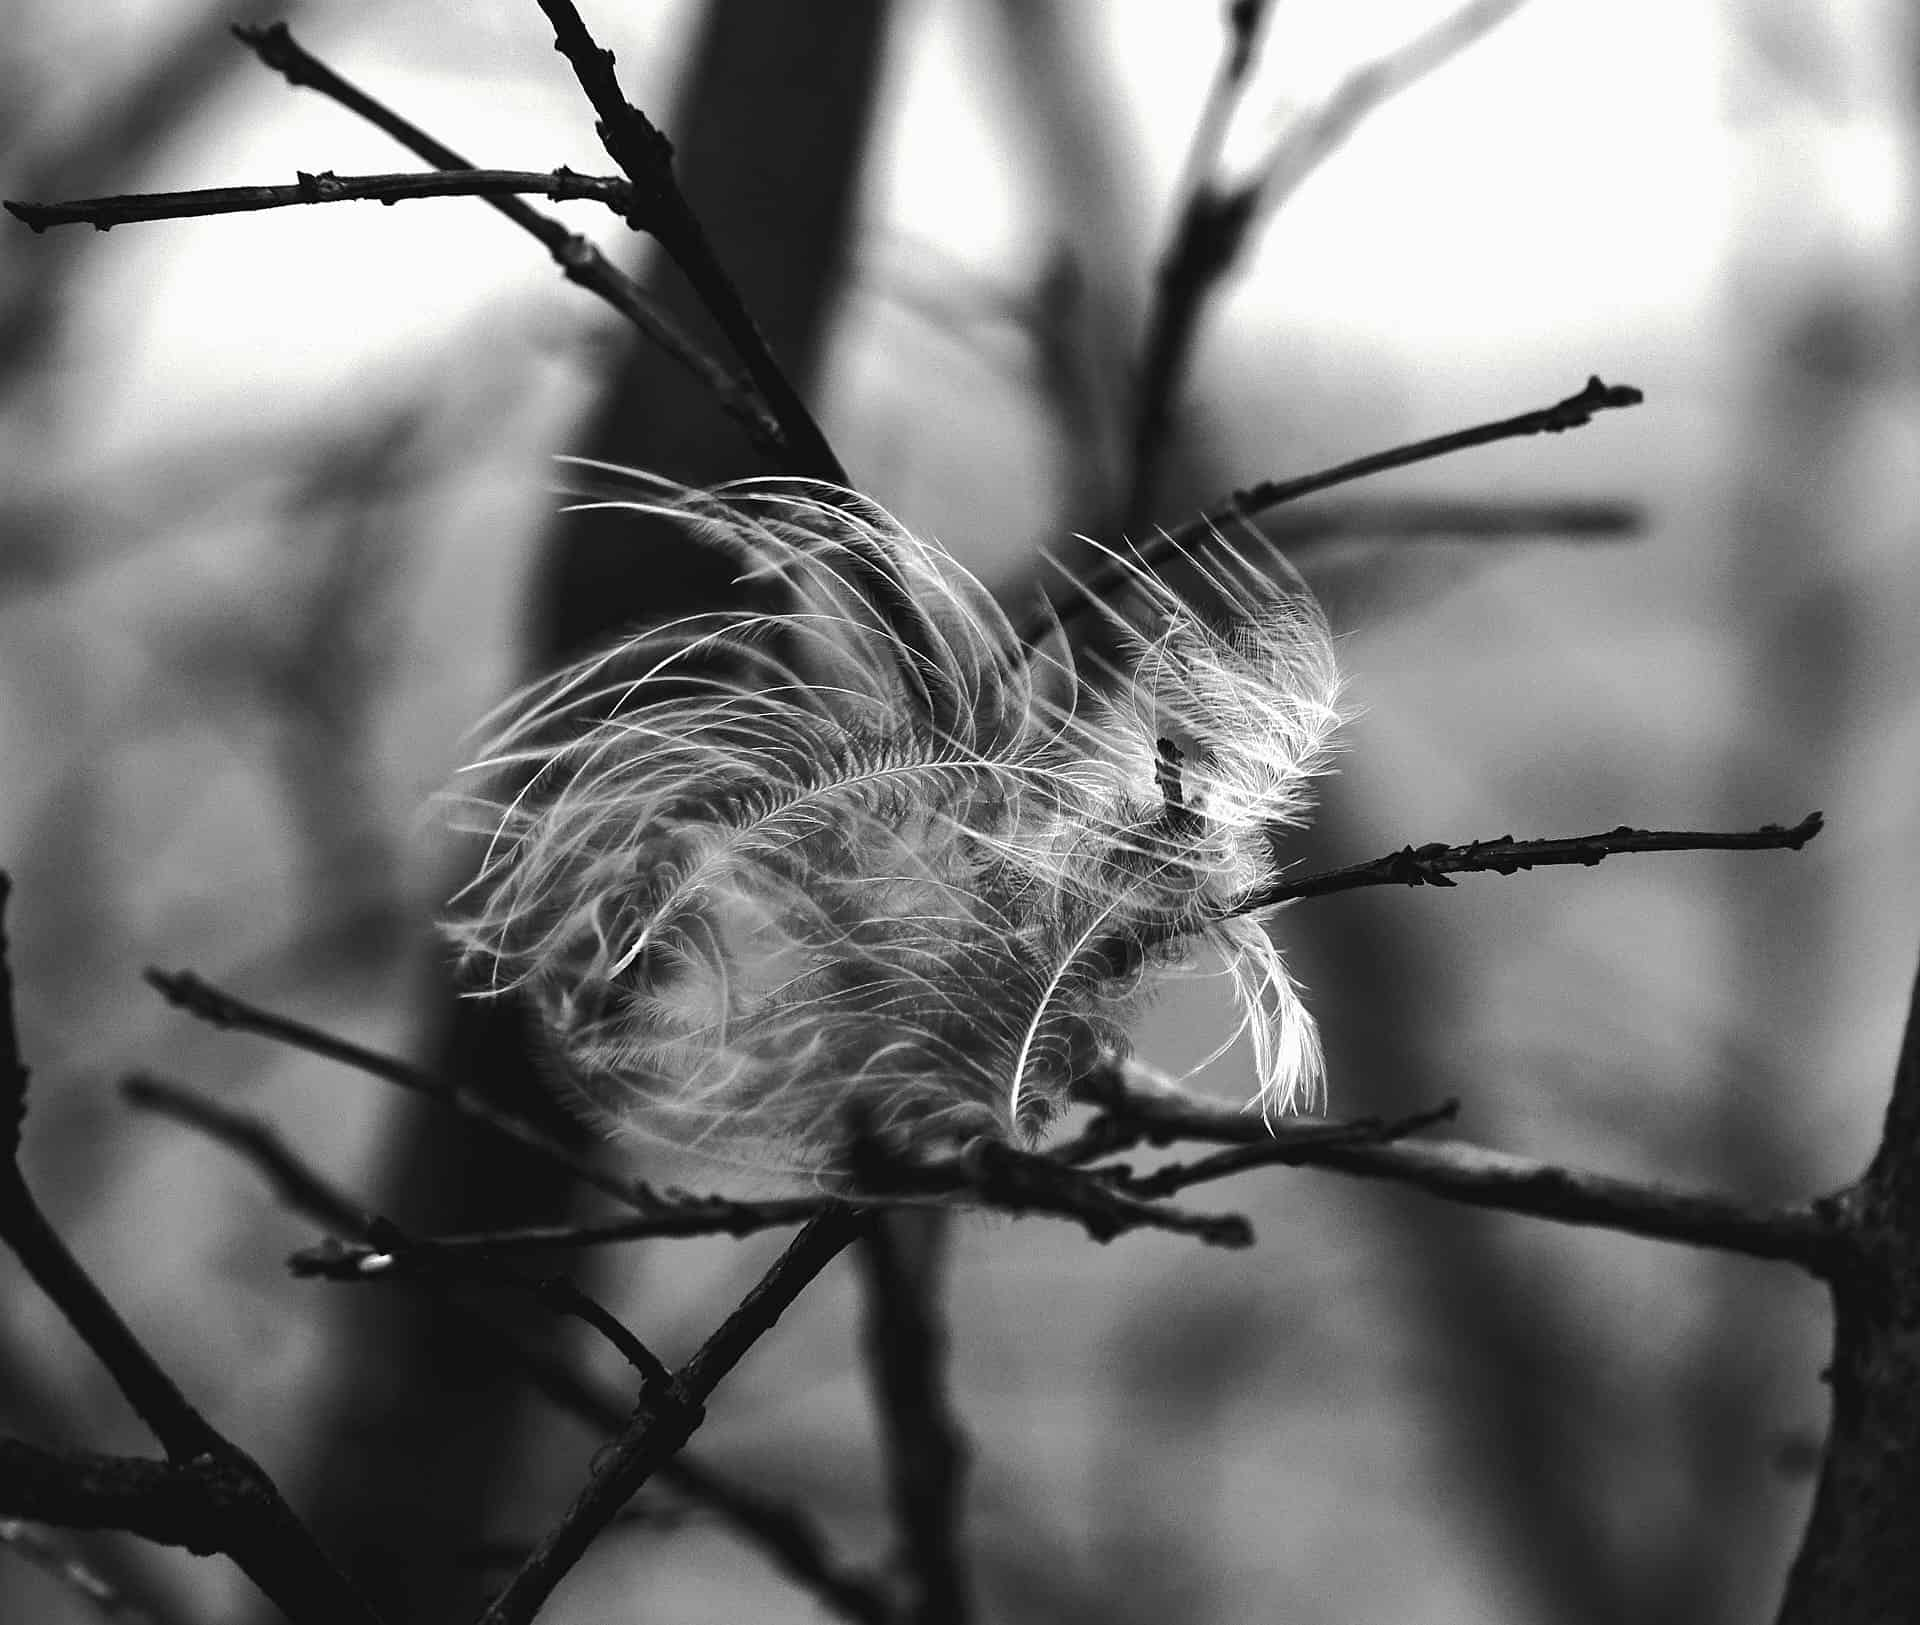 Feather on a branch blowing in the wind